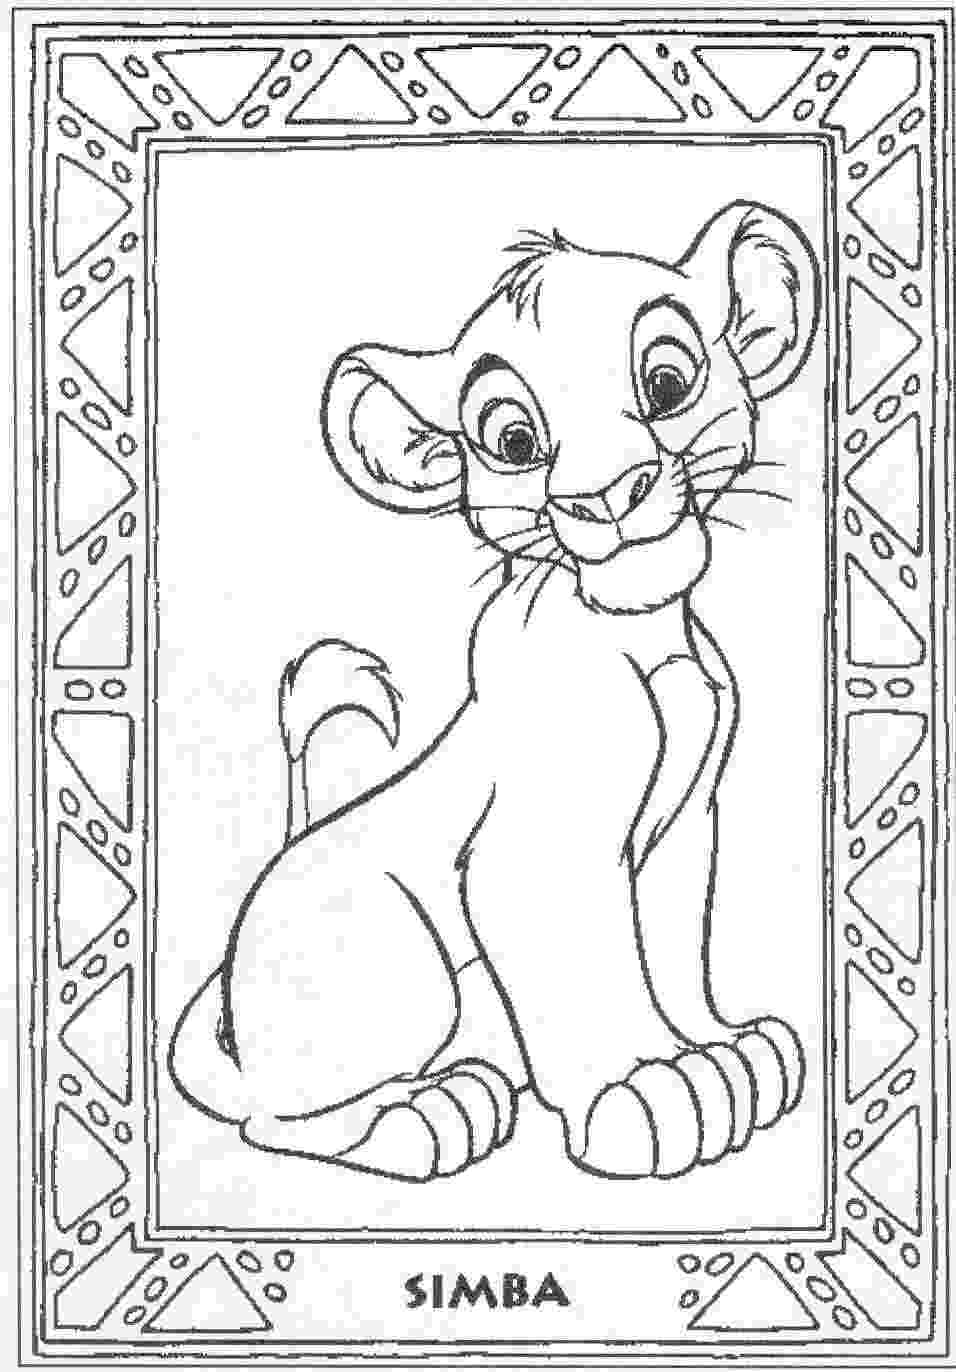 lion king coloring book pages lion king coloring pages 2 coloring pages to print lion king pages coloring book